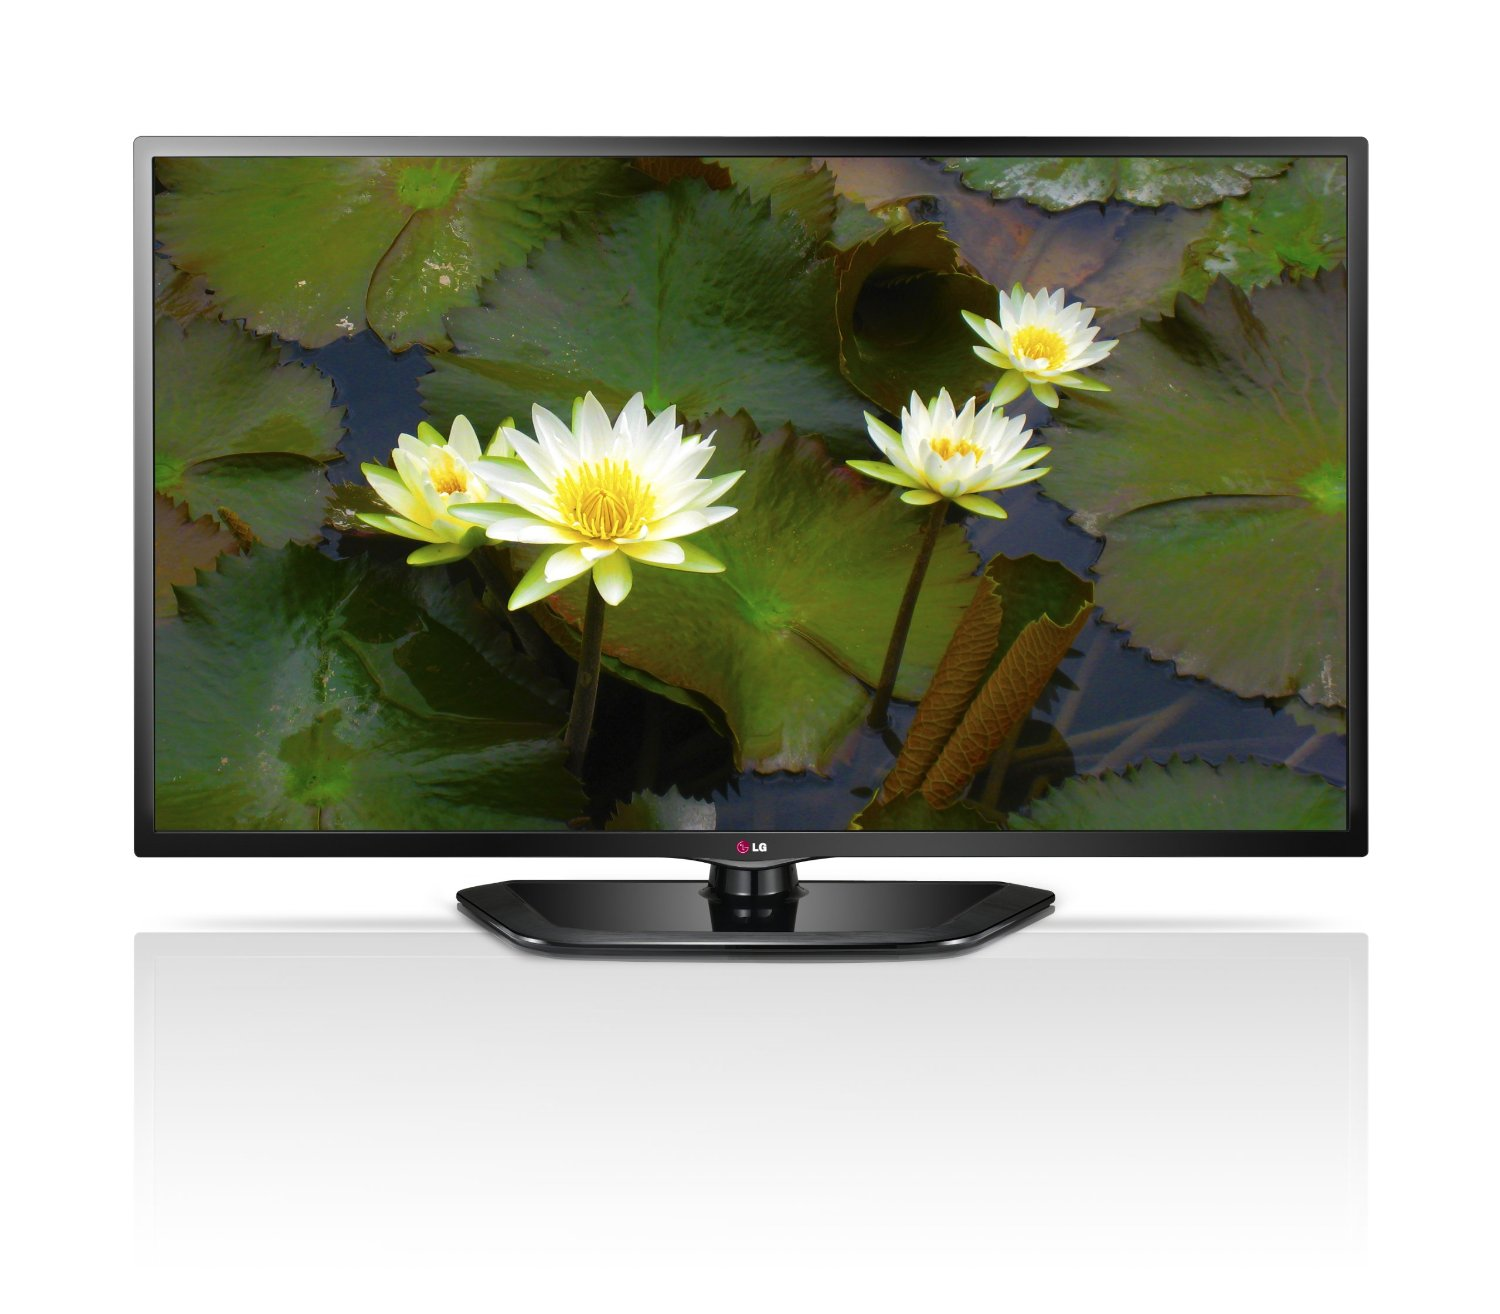 LG Electronics 42-Inch LED TV